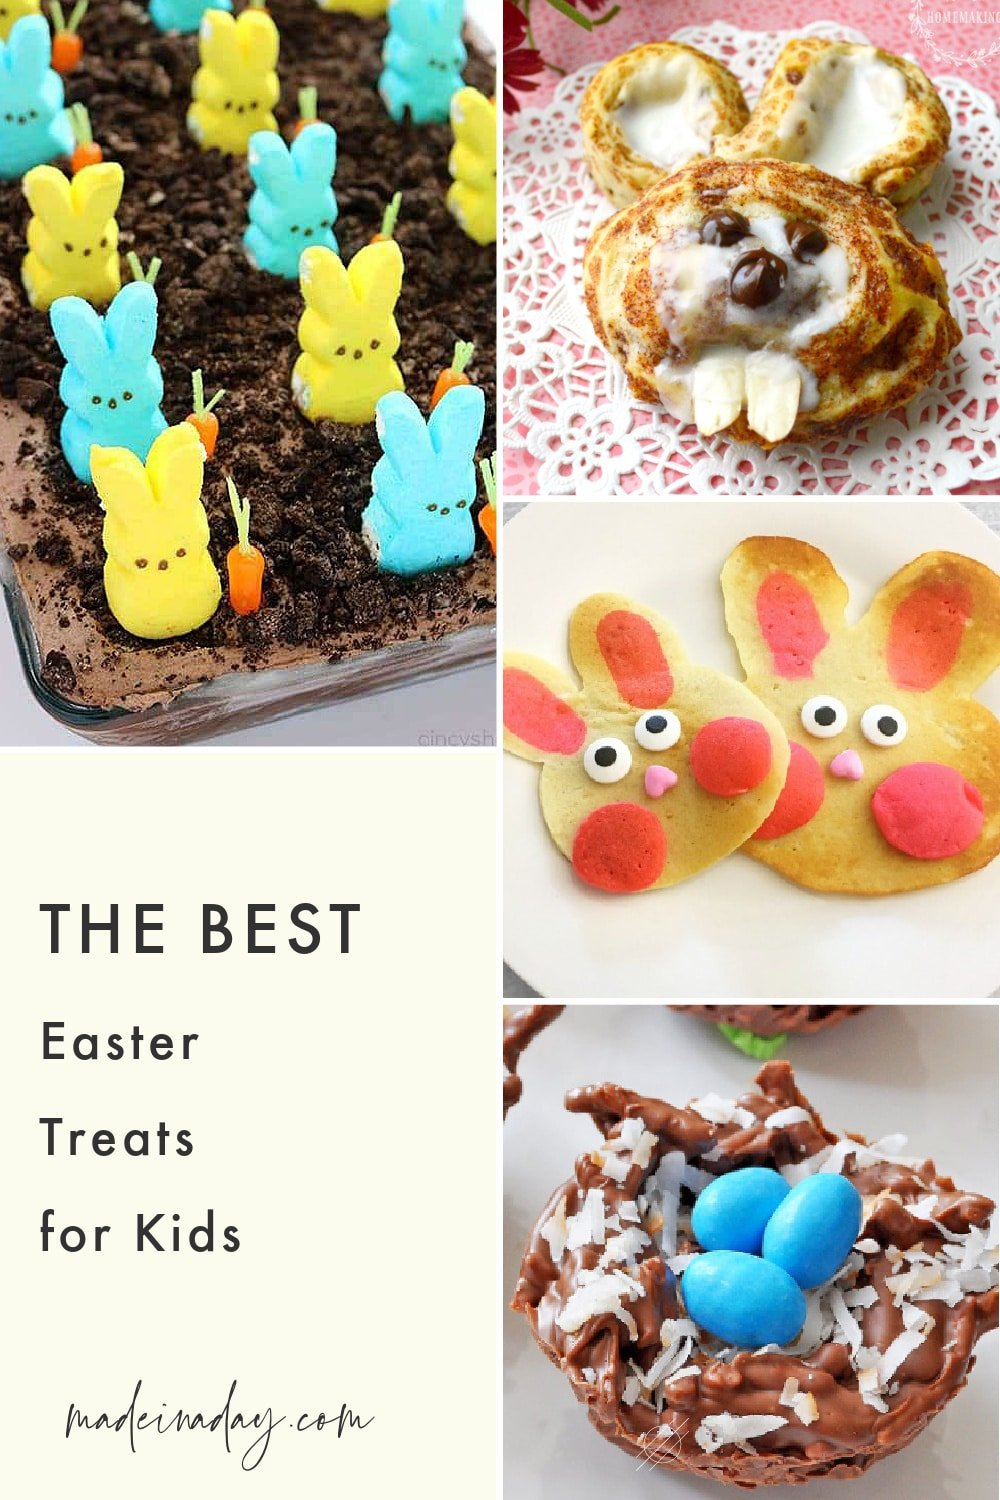 Fun Easter Treats: Bunnies Eggs and Baby Chicks